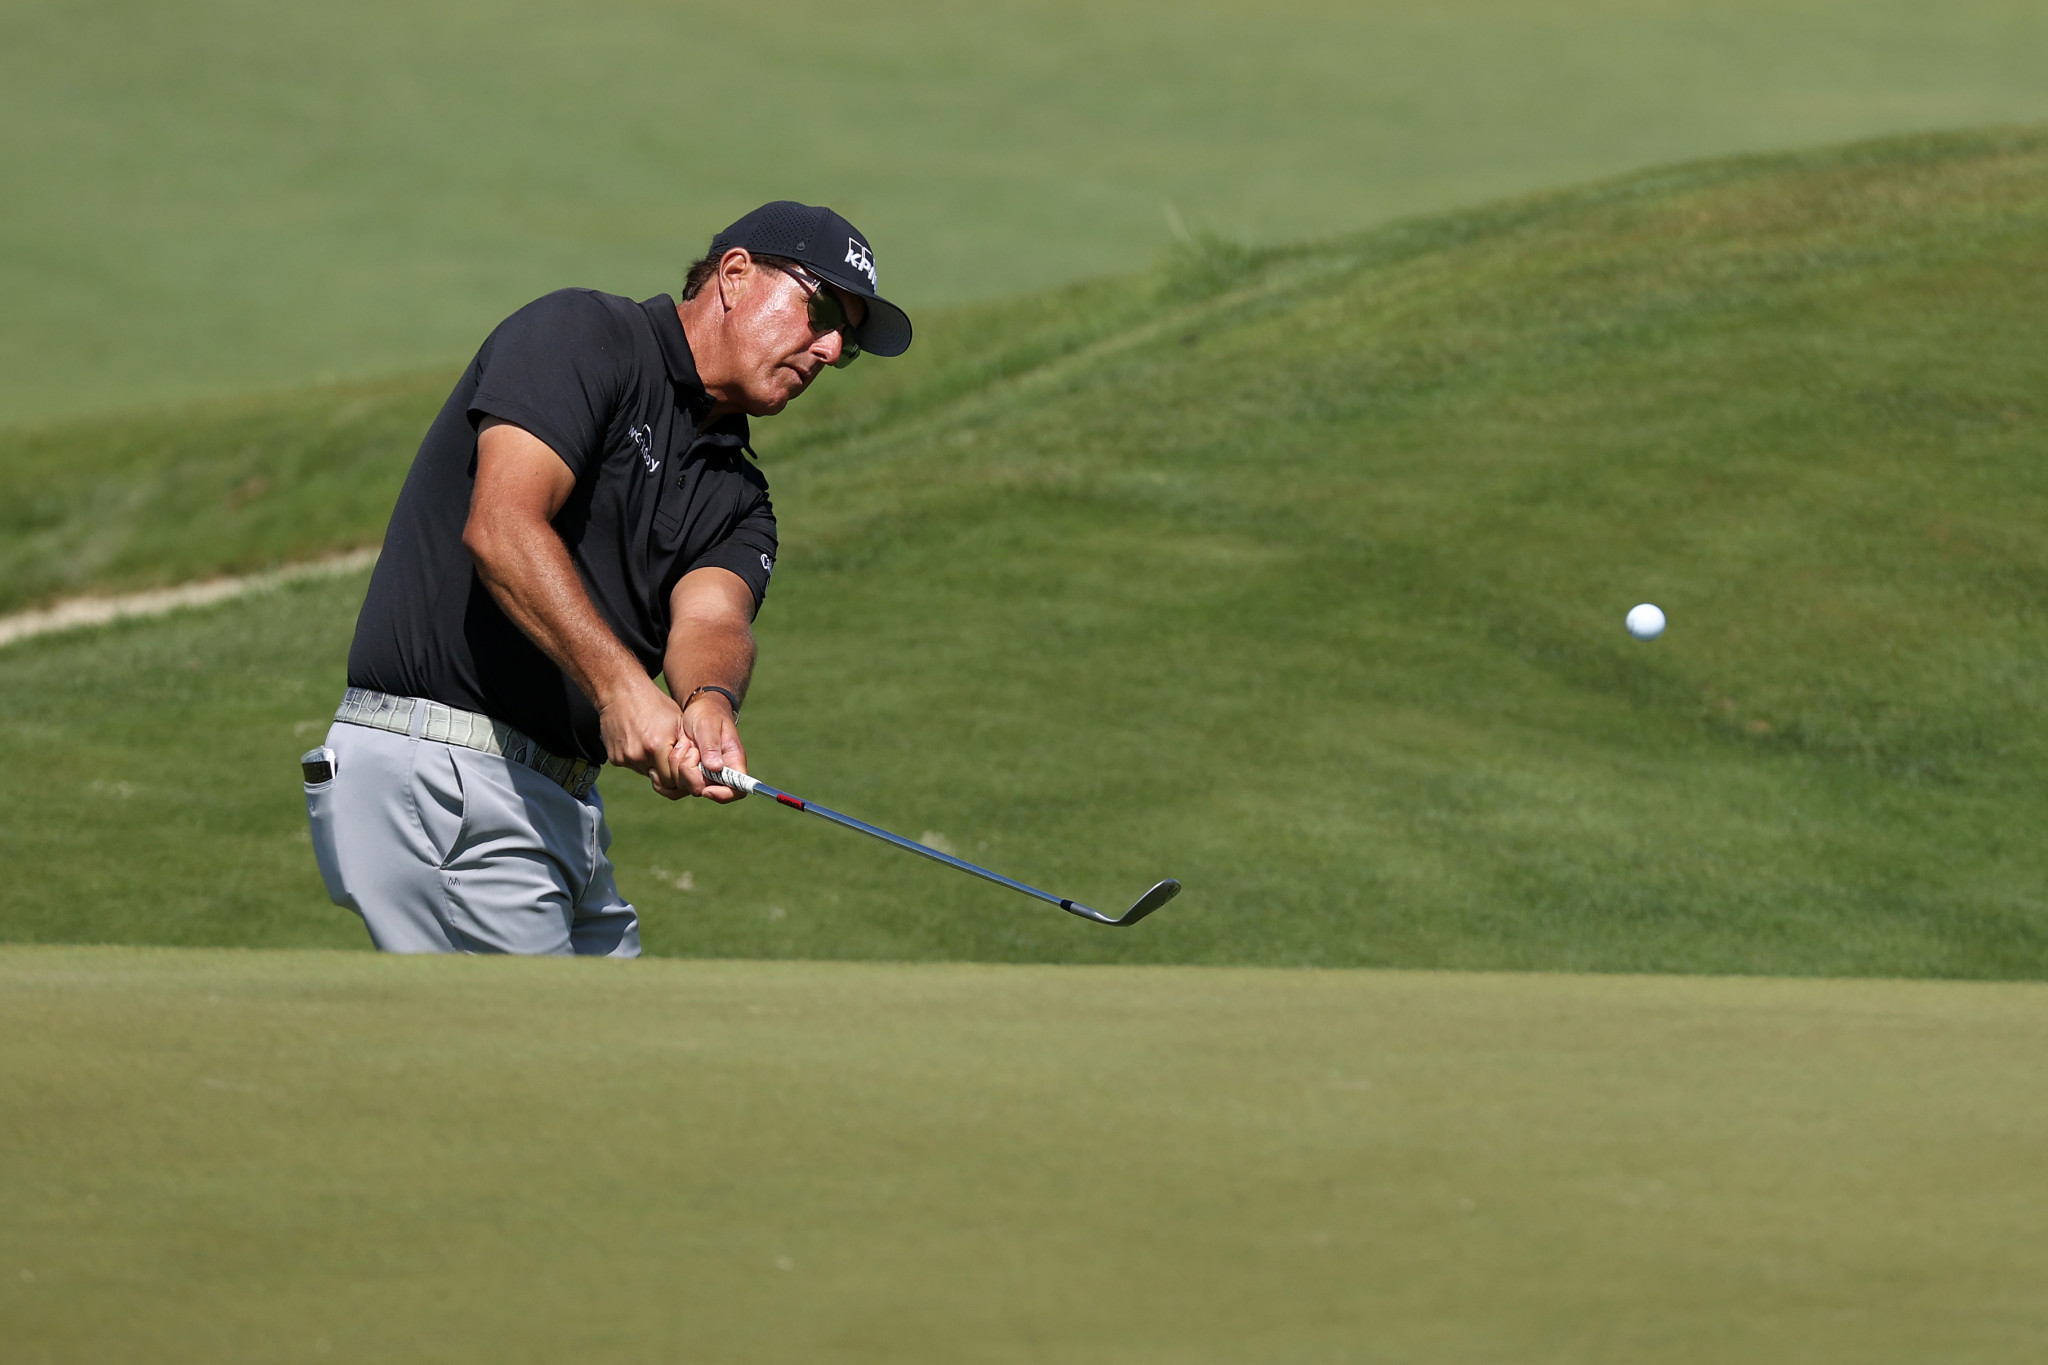 Mickelson and Oosthuizen share 36-hole lead at PGA Championship